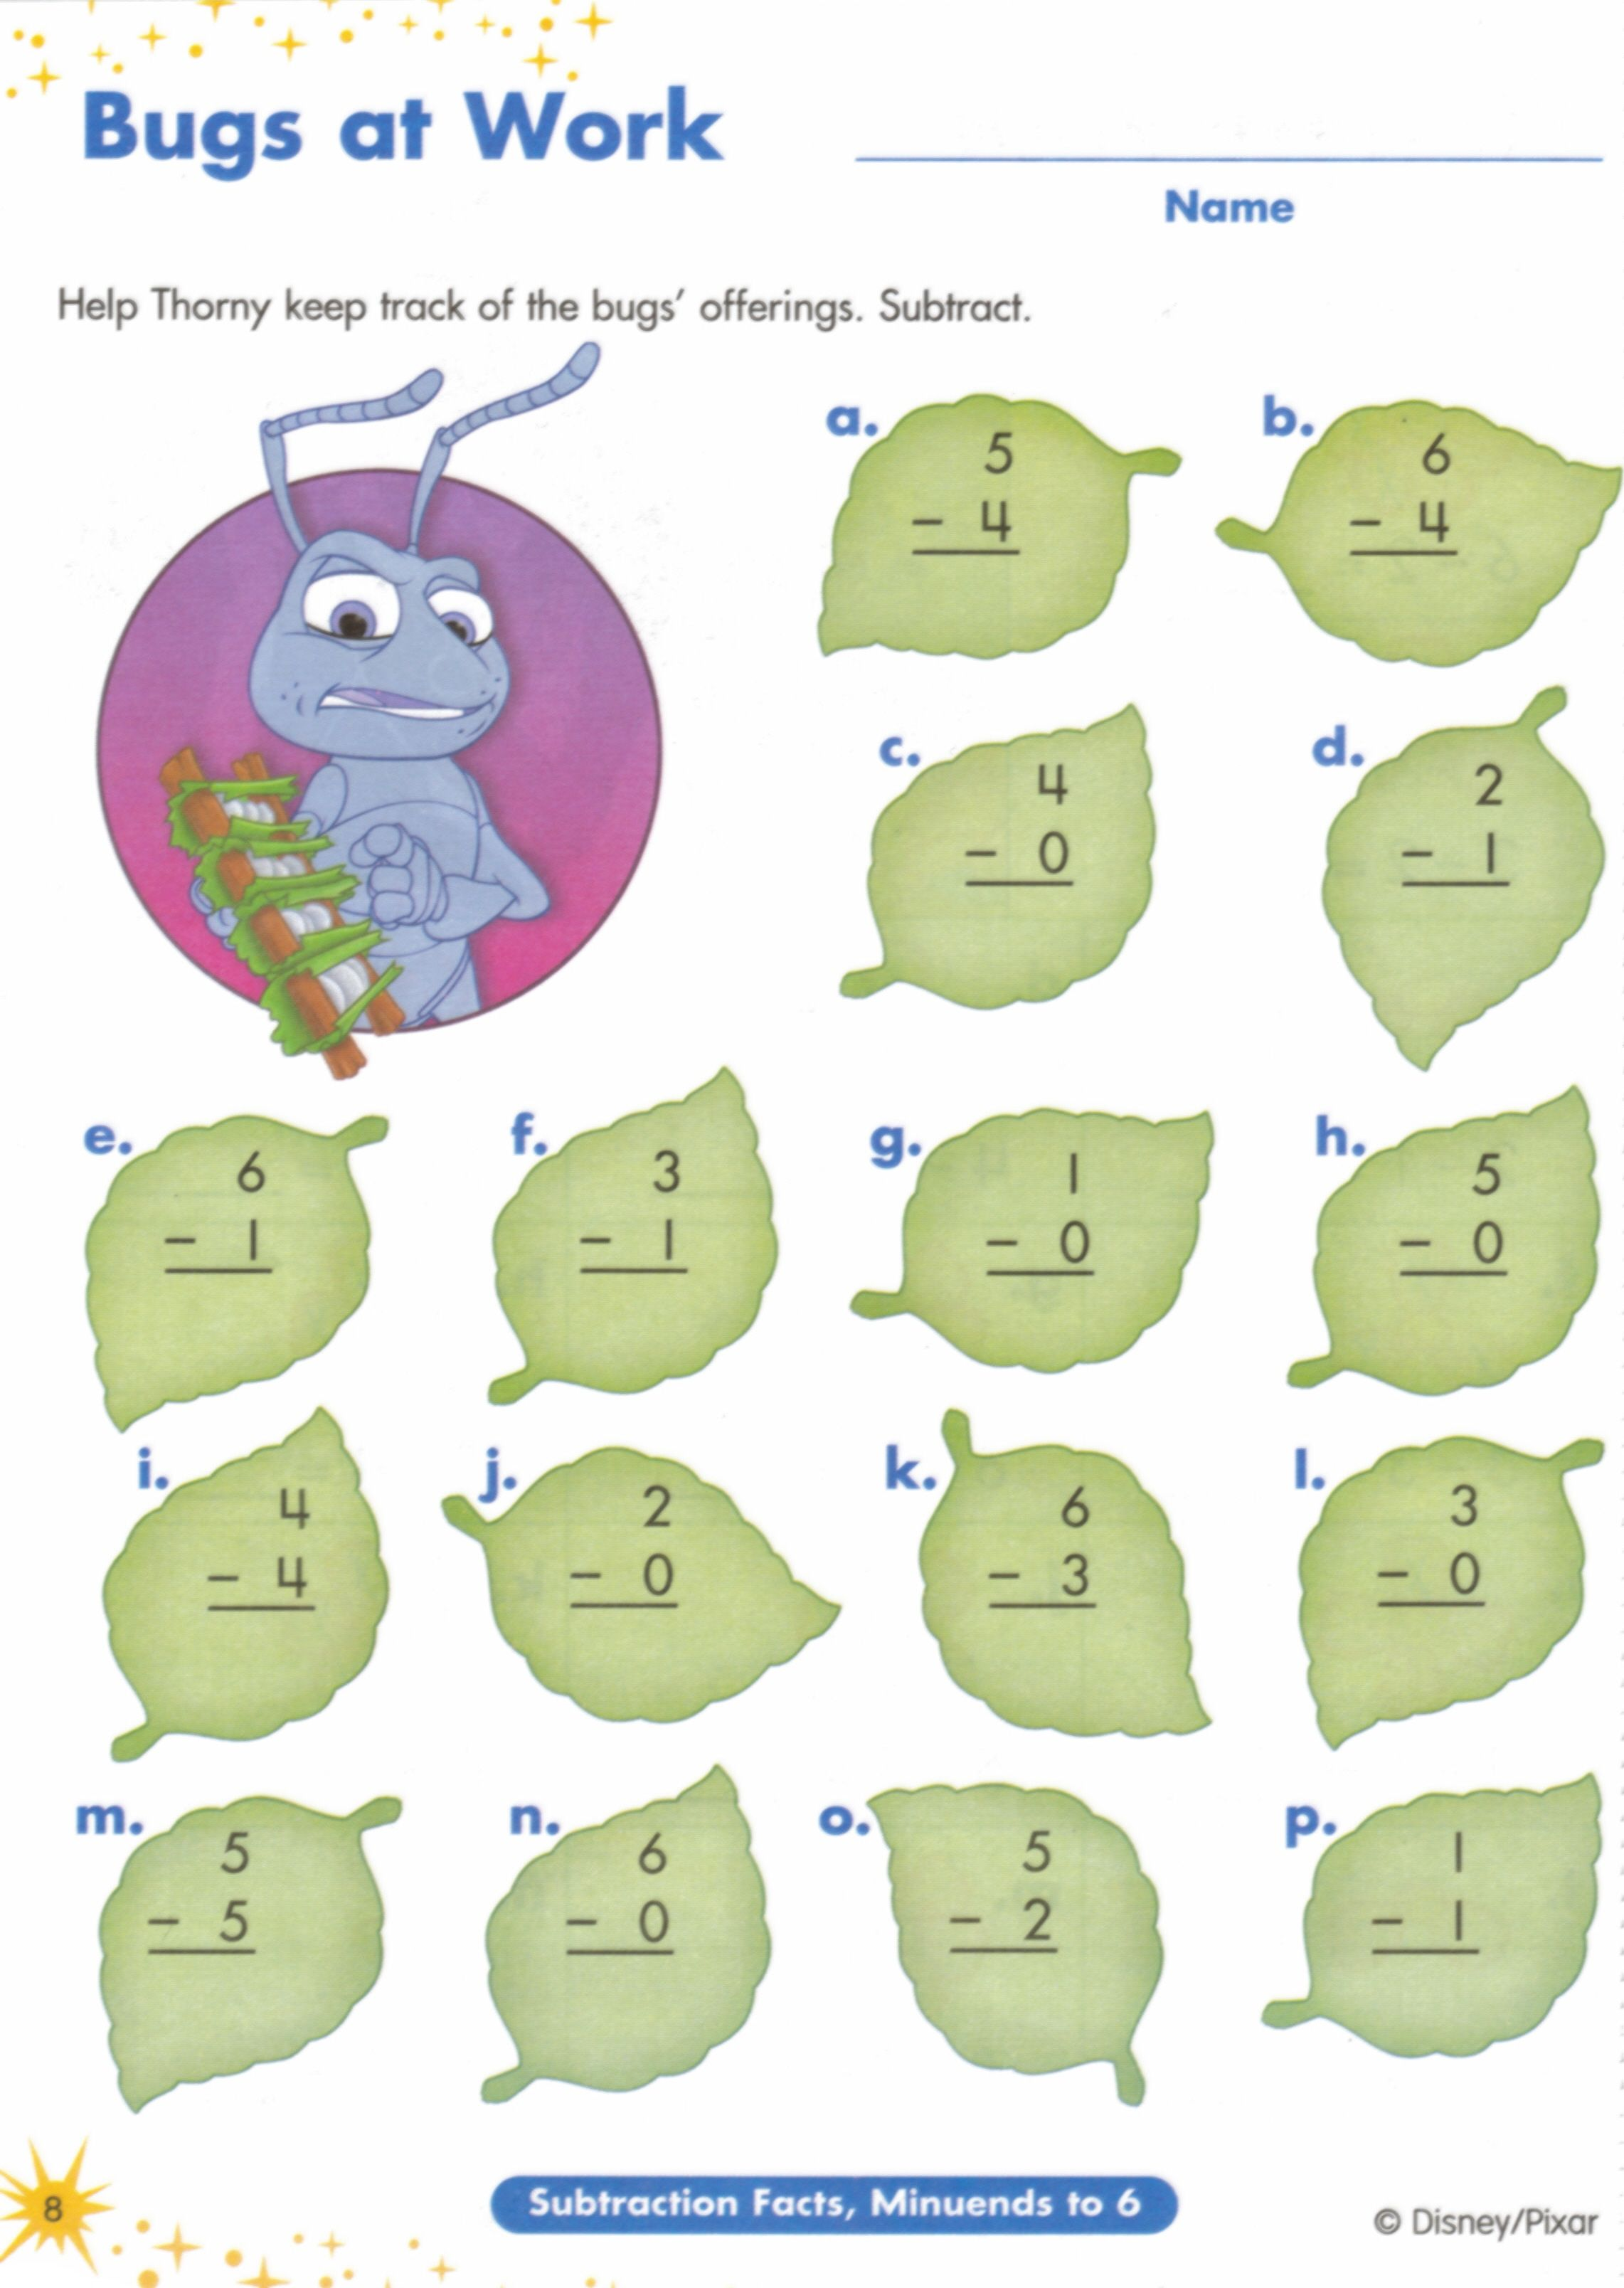 Proatmealus  Pretty  Images About Worksheets On Pinterest  Fun Facts For Kids  With Entrancing  Images About Worksheets On Pinterest  Fun Facts For Kids Earth Day Worksheets And Jungles With Beautiful Compound Words Worksheet Nd Grade Also Biological Levels Of Organization Worksheet In Addition Carnivores Herbivores And Omnivores Worksheets And Healthy And Unhealthy Food Worksheet As Well As Indirect Measurement Worksheets Additionally Main Idea Worksheets For Second Grade From Pinterestcom With Proatmealus  Entrancing  Images About Worksheets On Pinterest  Fun Facts For Kids  With Beautiful  Images About Worksheets On Pinterest  Fun Facts For Kids Earth Day Worksheets And Jungles And Pretty Compound Words Worksheet Nd Grade Also Biological Levels Of Organization Worksheet In Addition Carnivores Herbivores And Omnivores Worksheets From Pinterestcom